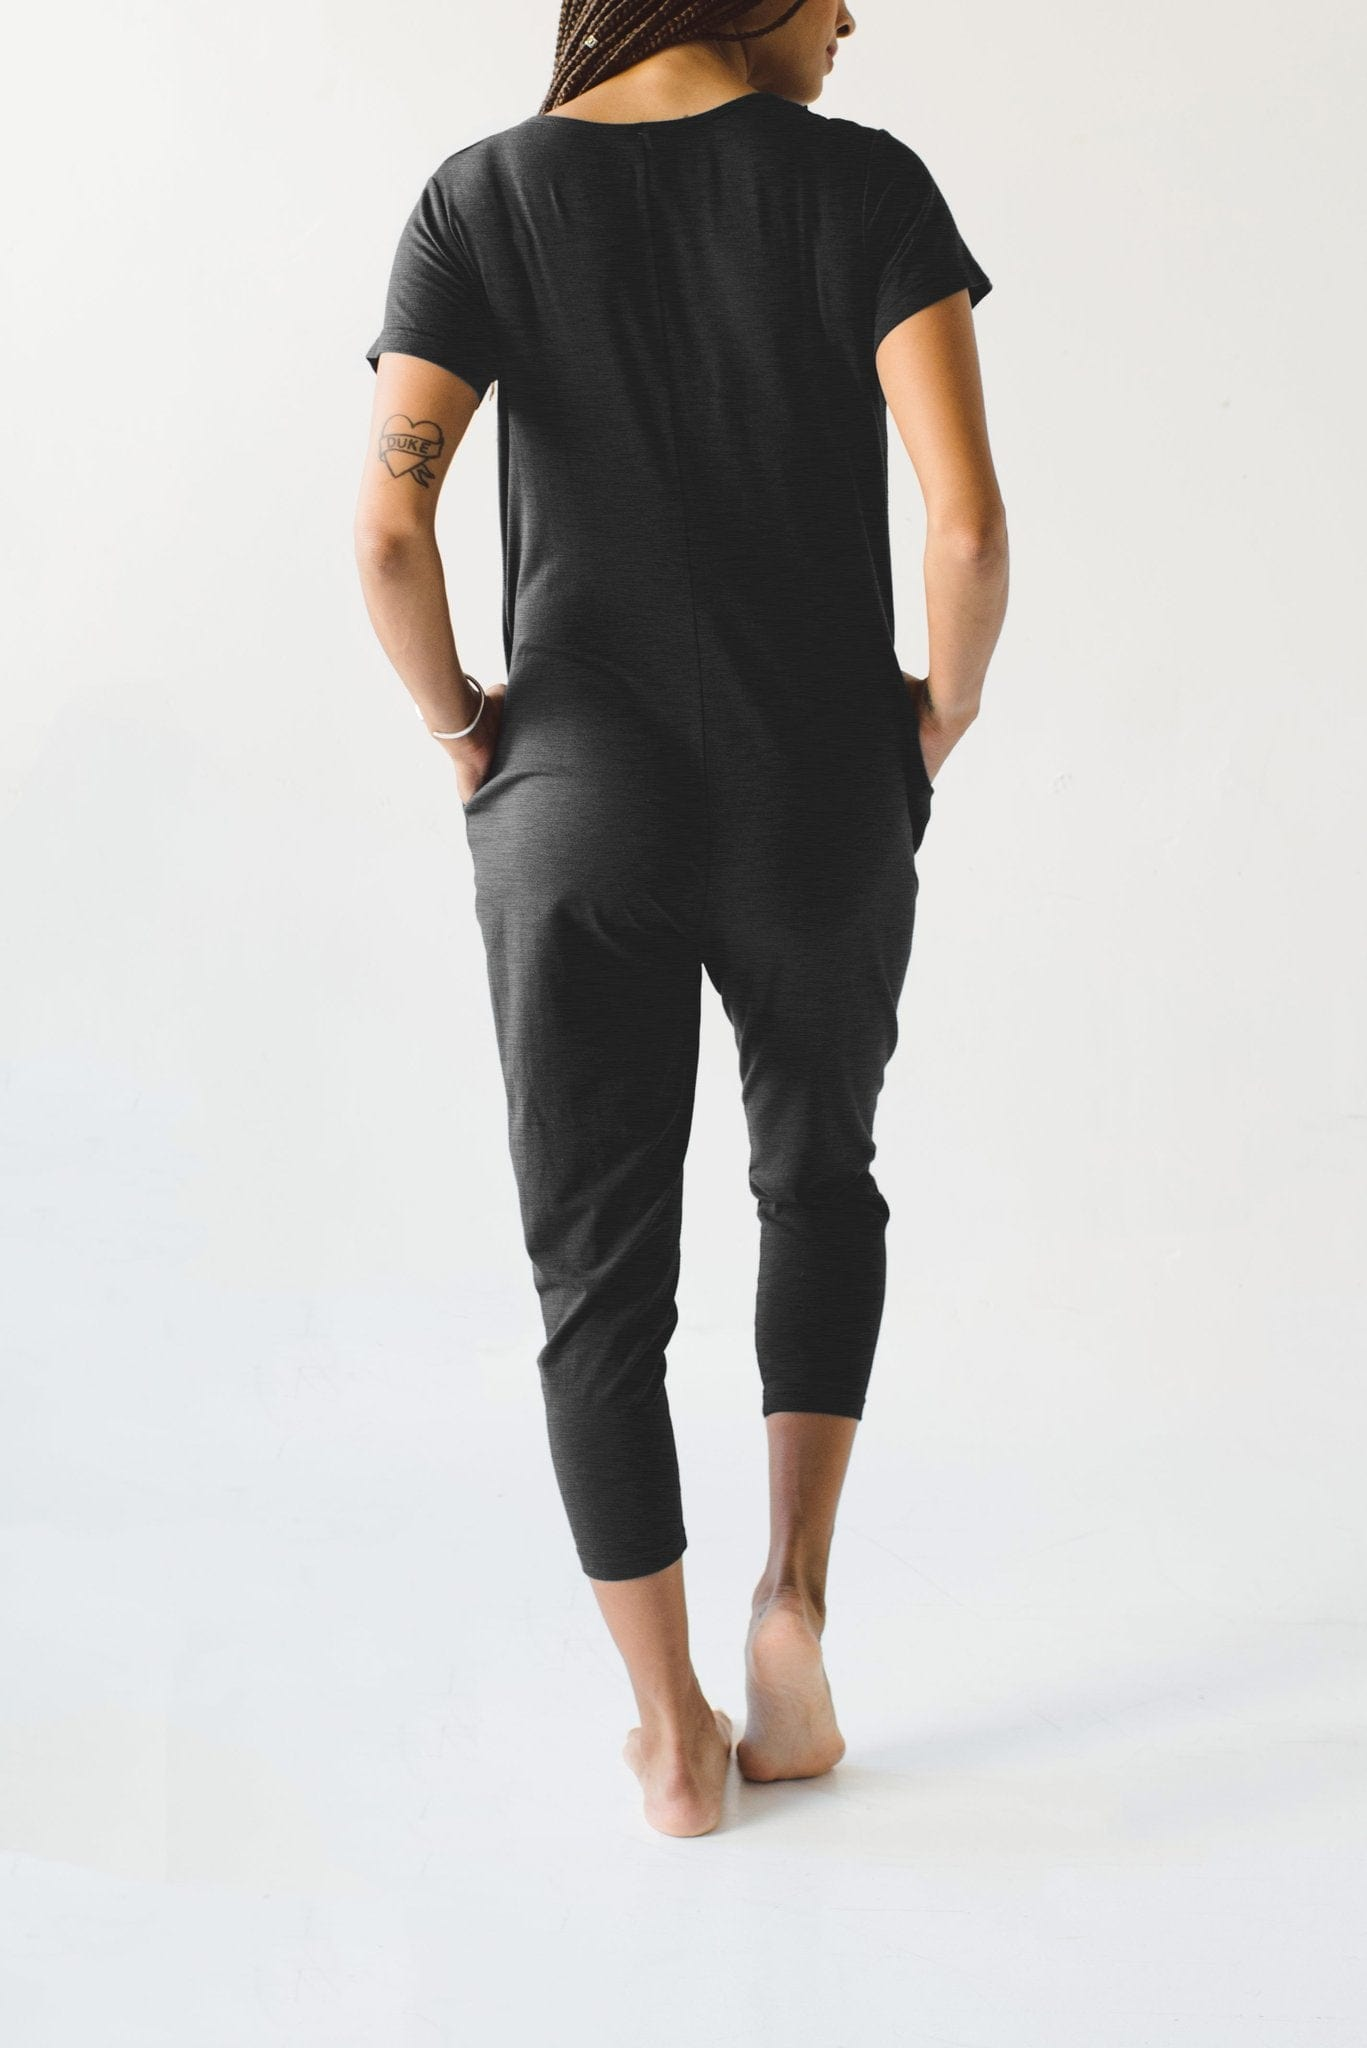 Smash + Tess Adult Sunday Romper - Midnight Black